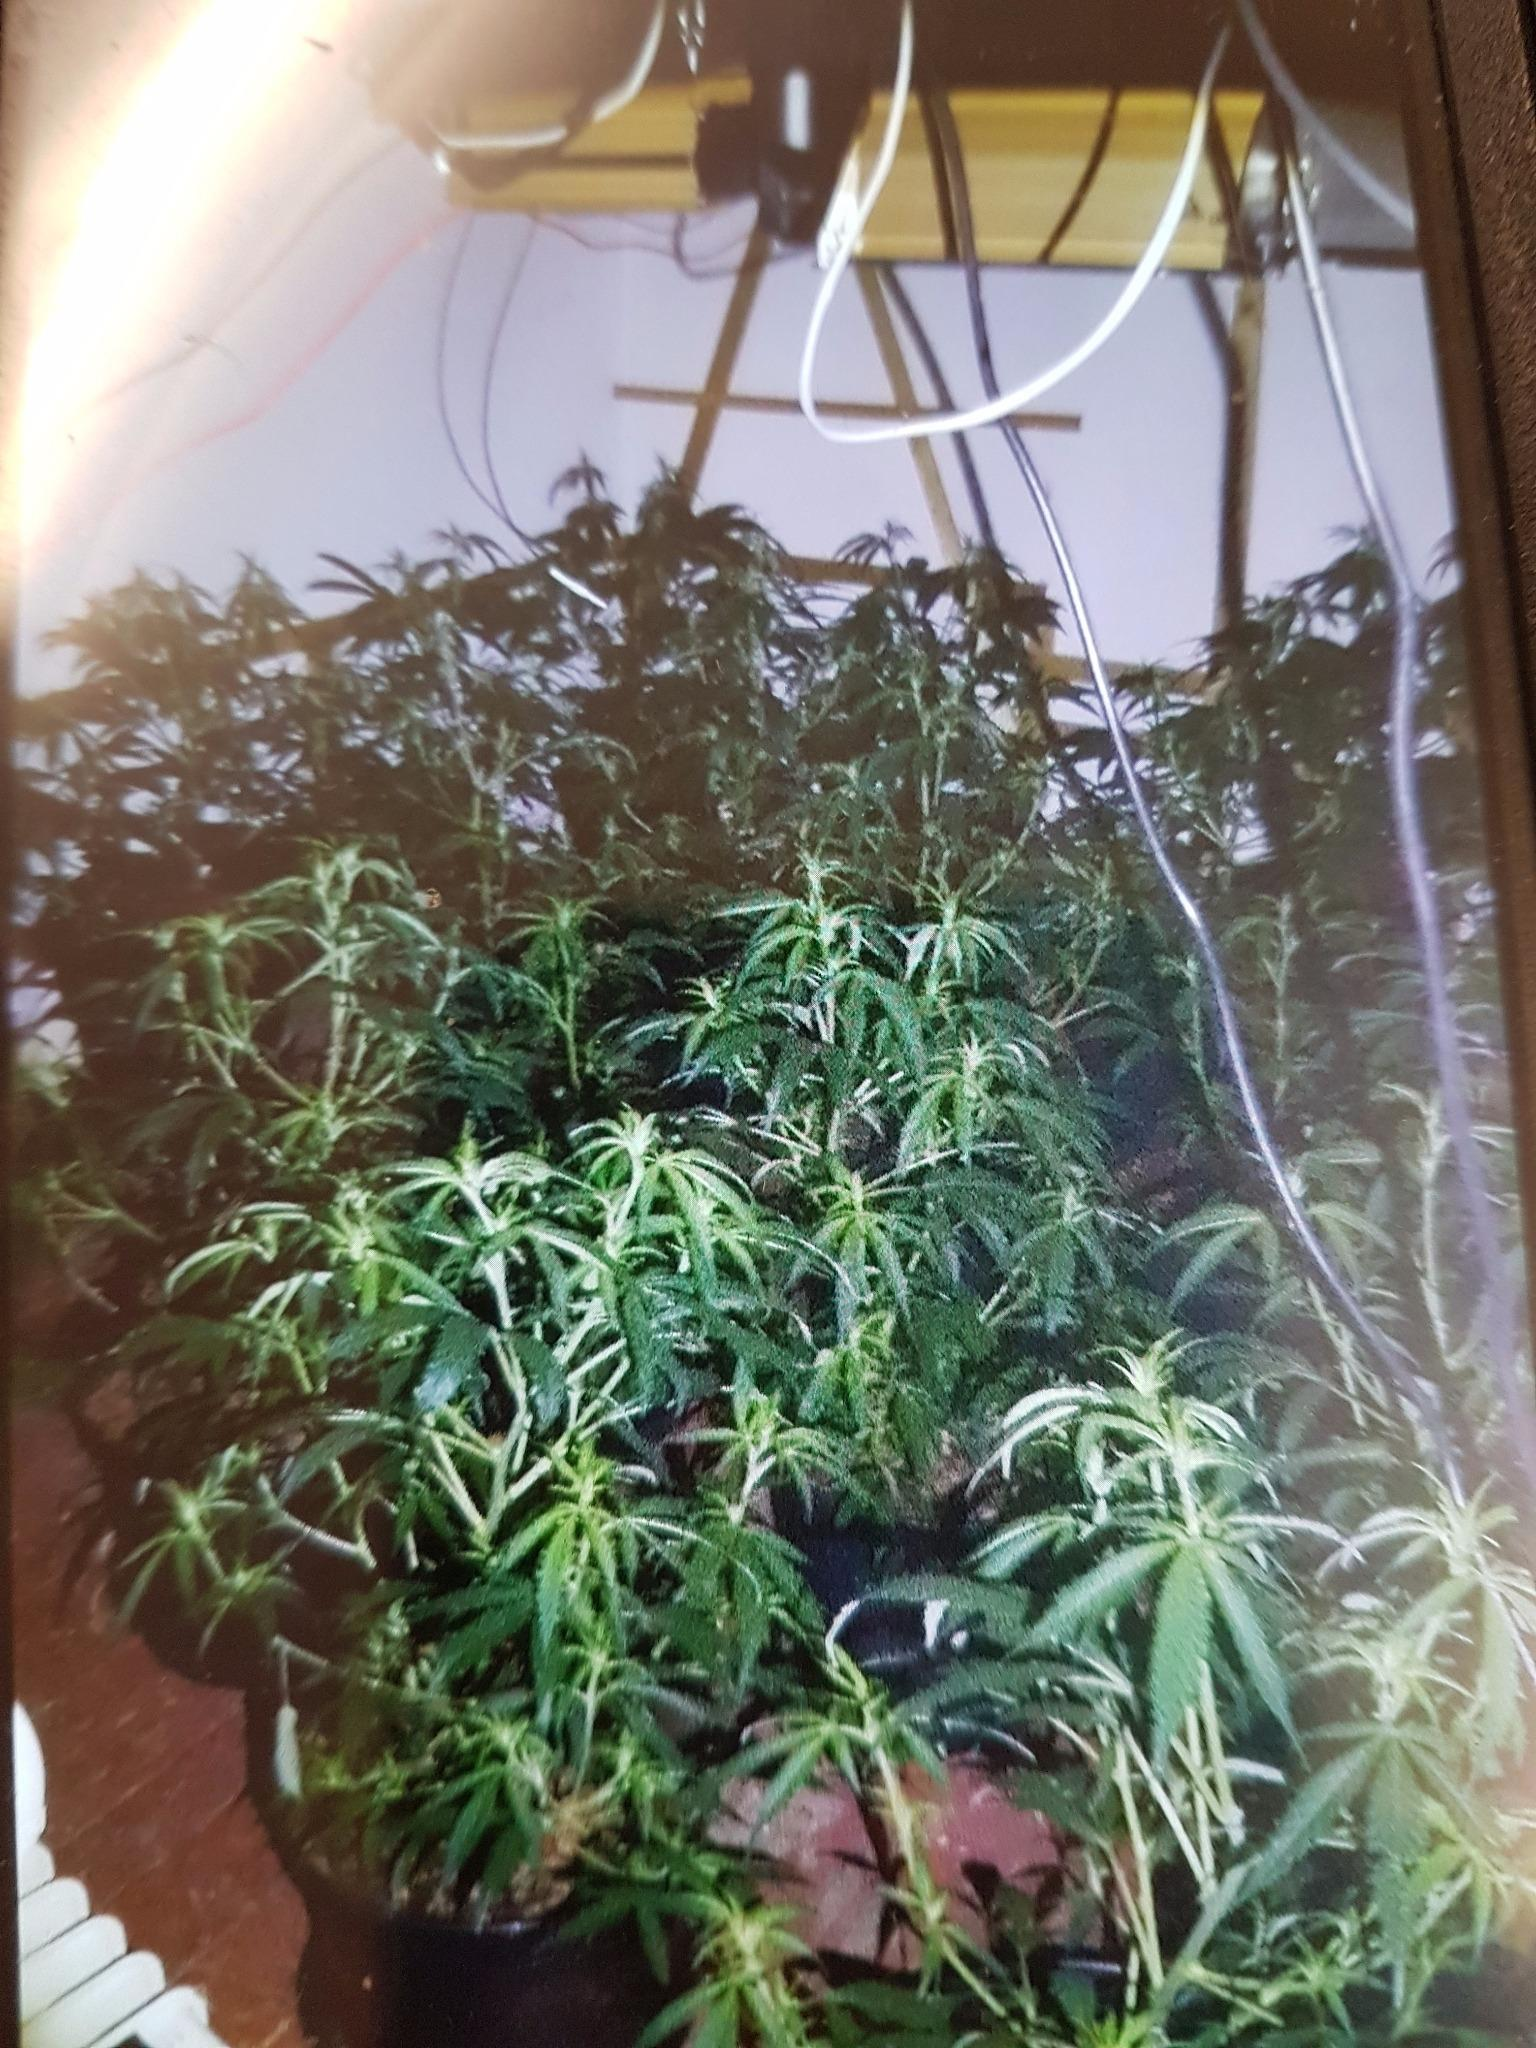 A cannabis farm was found inside a property in Smith Street, Nelson, after the fire service were called to attend a flooding incident